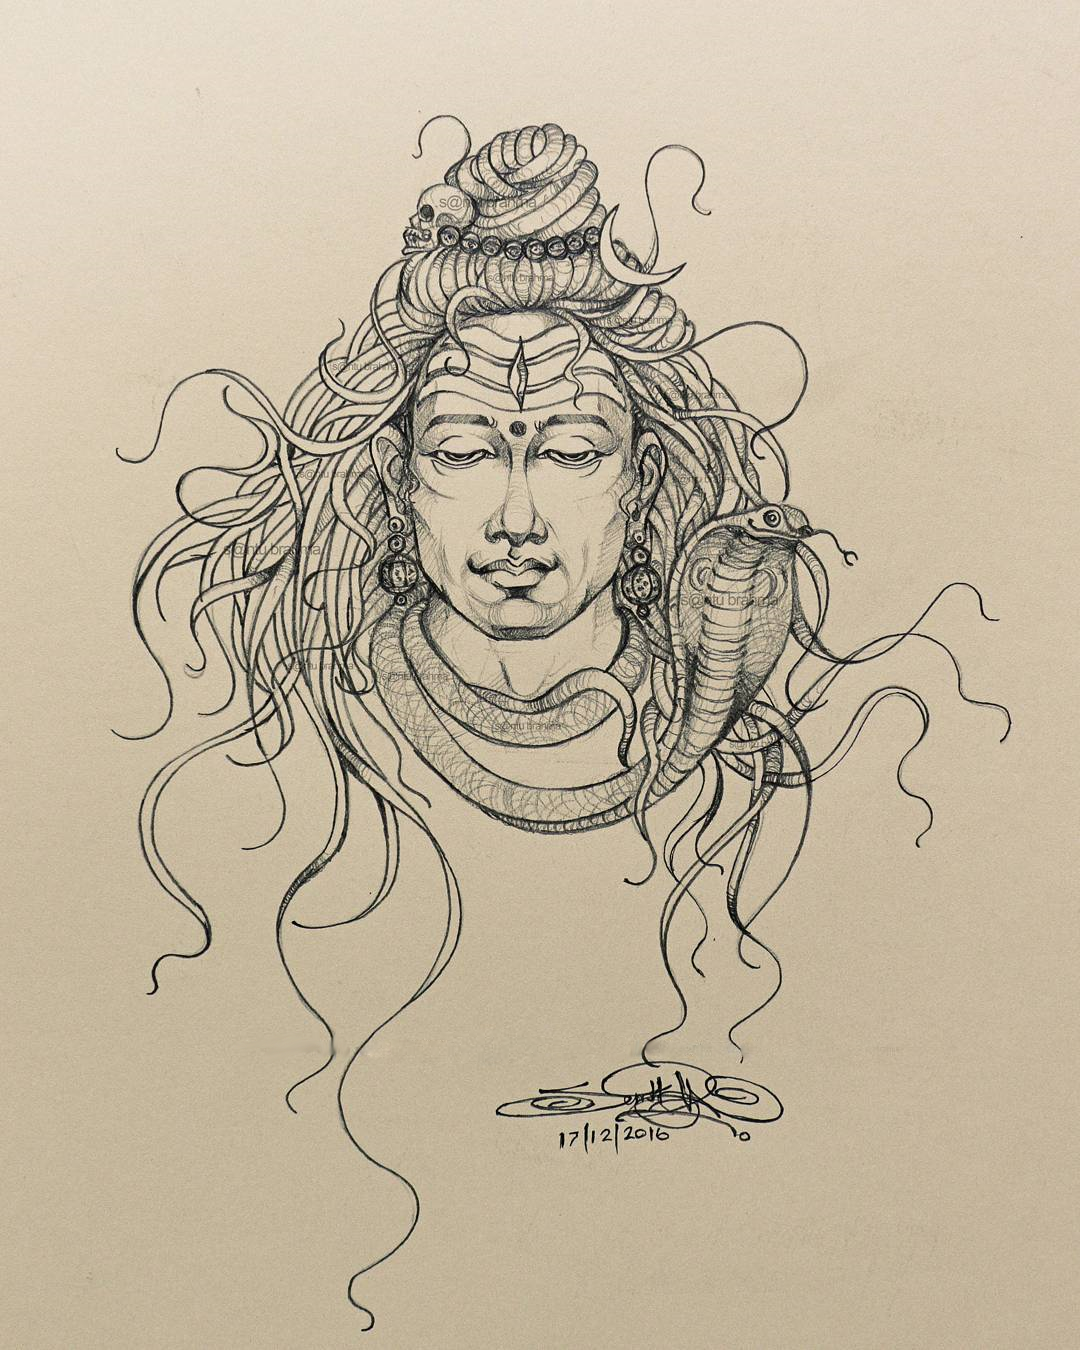 Santubrahmajatadhari shiva pencil on paper